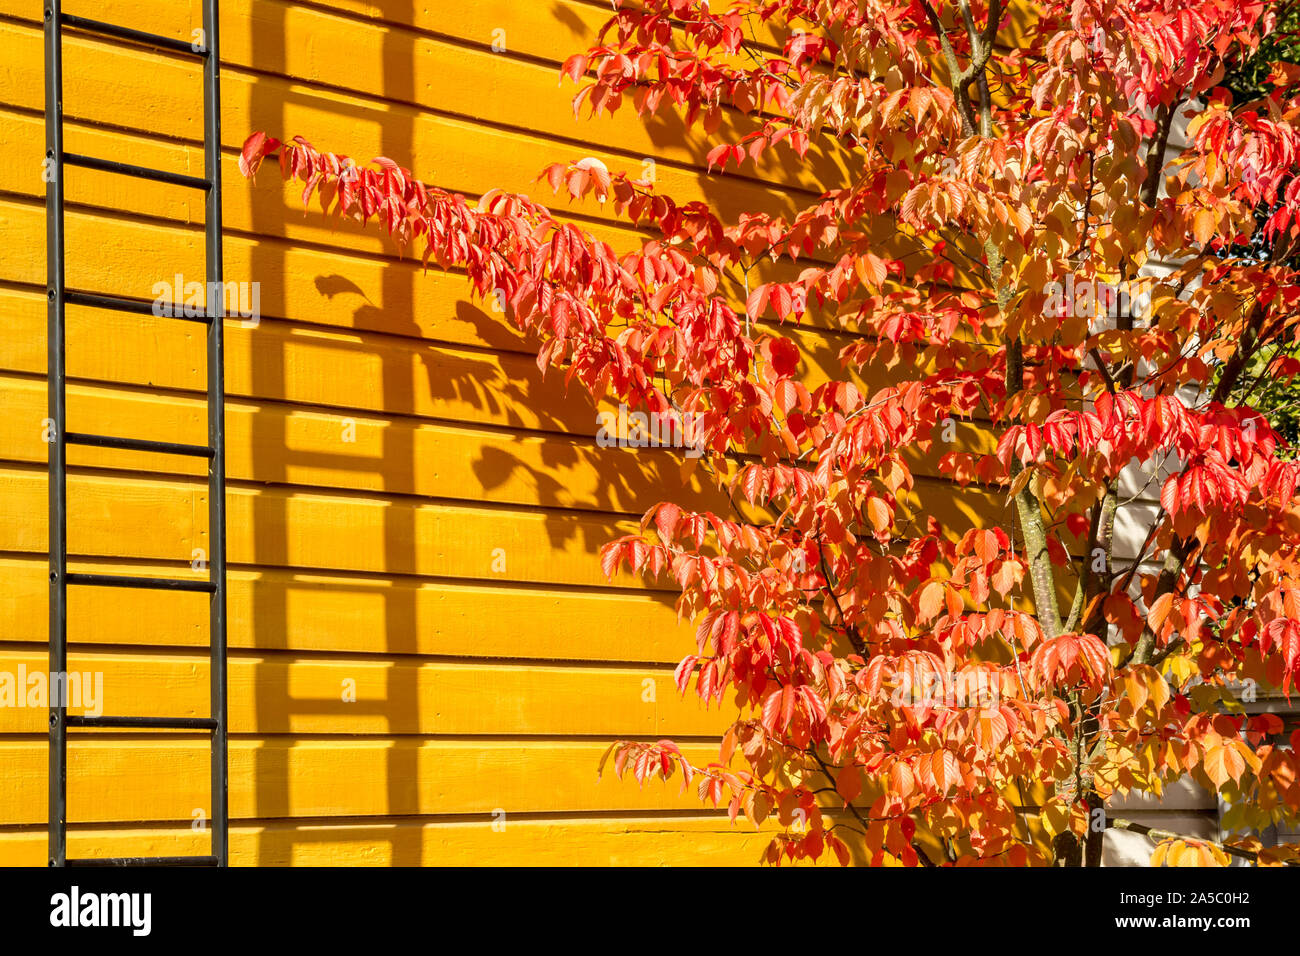 Sargent's Cherry (Prunus sargentii) tree in bright red autumn colors against yellow cottage wall Stock Photo